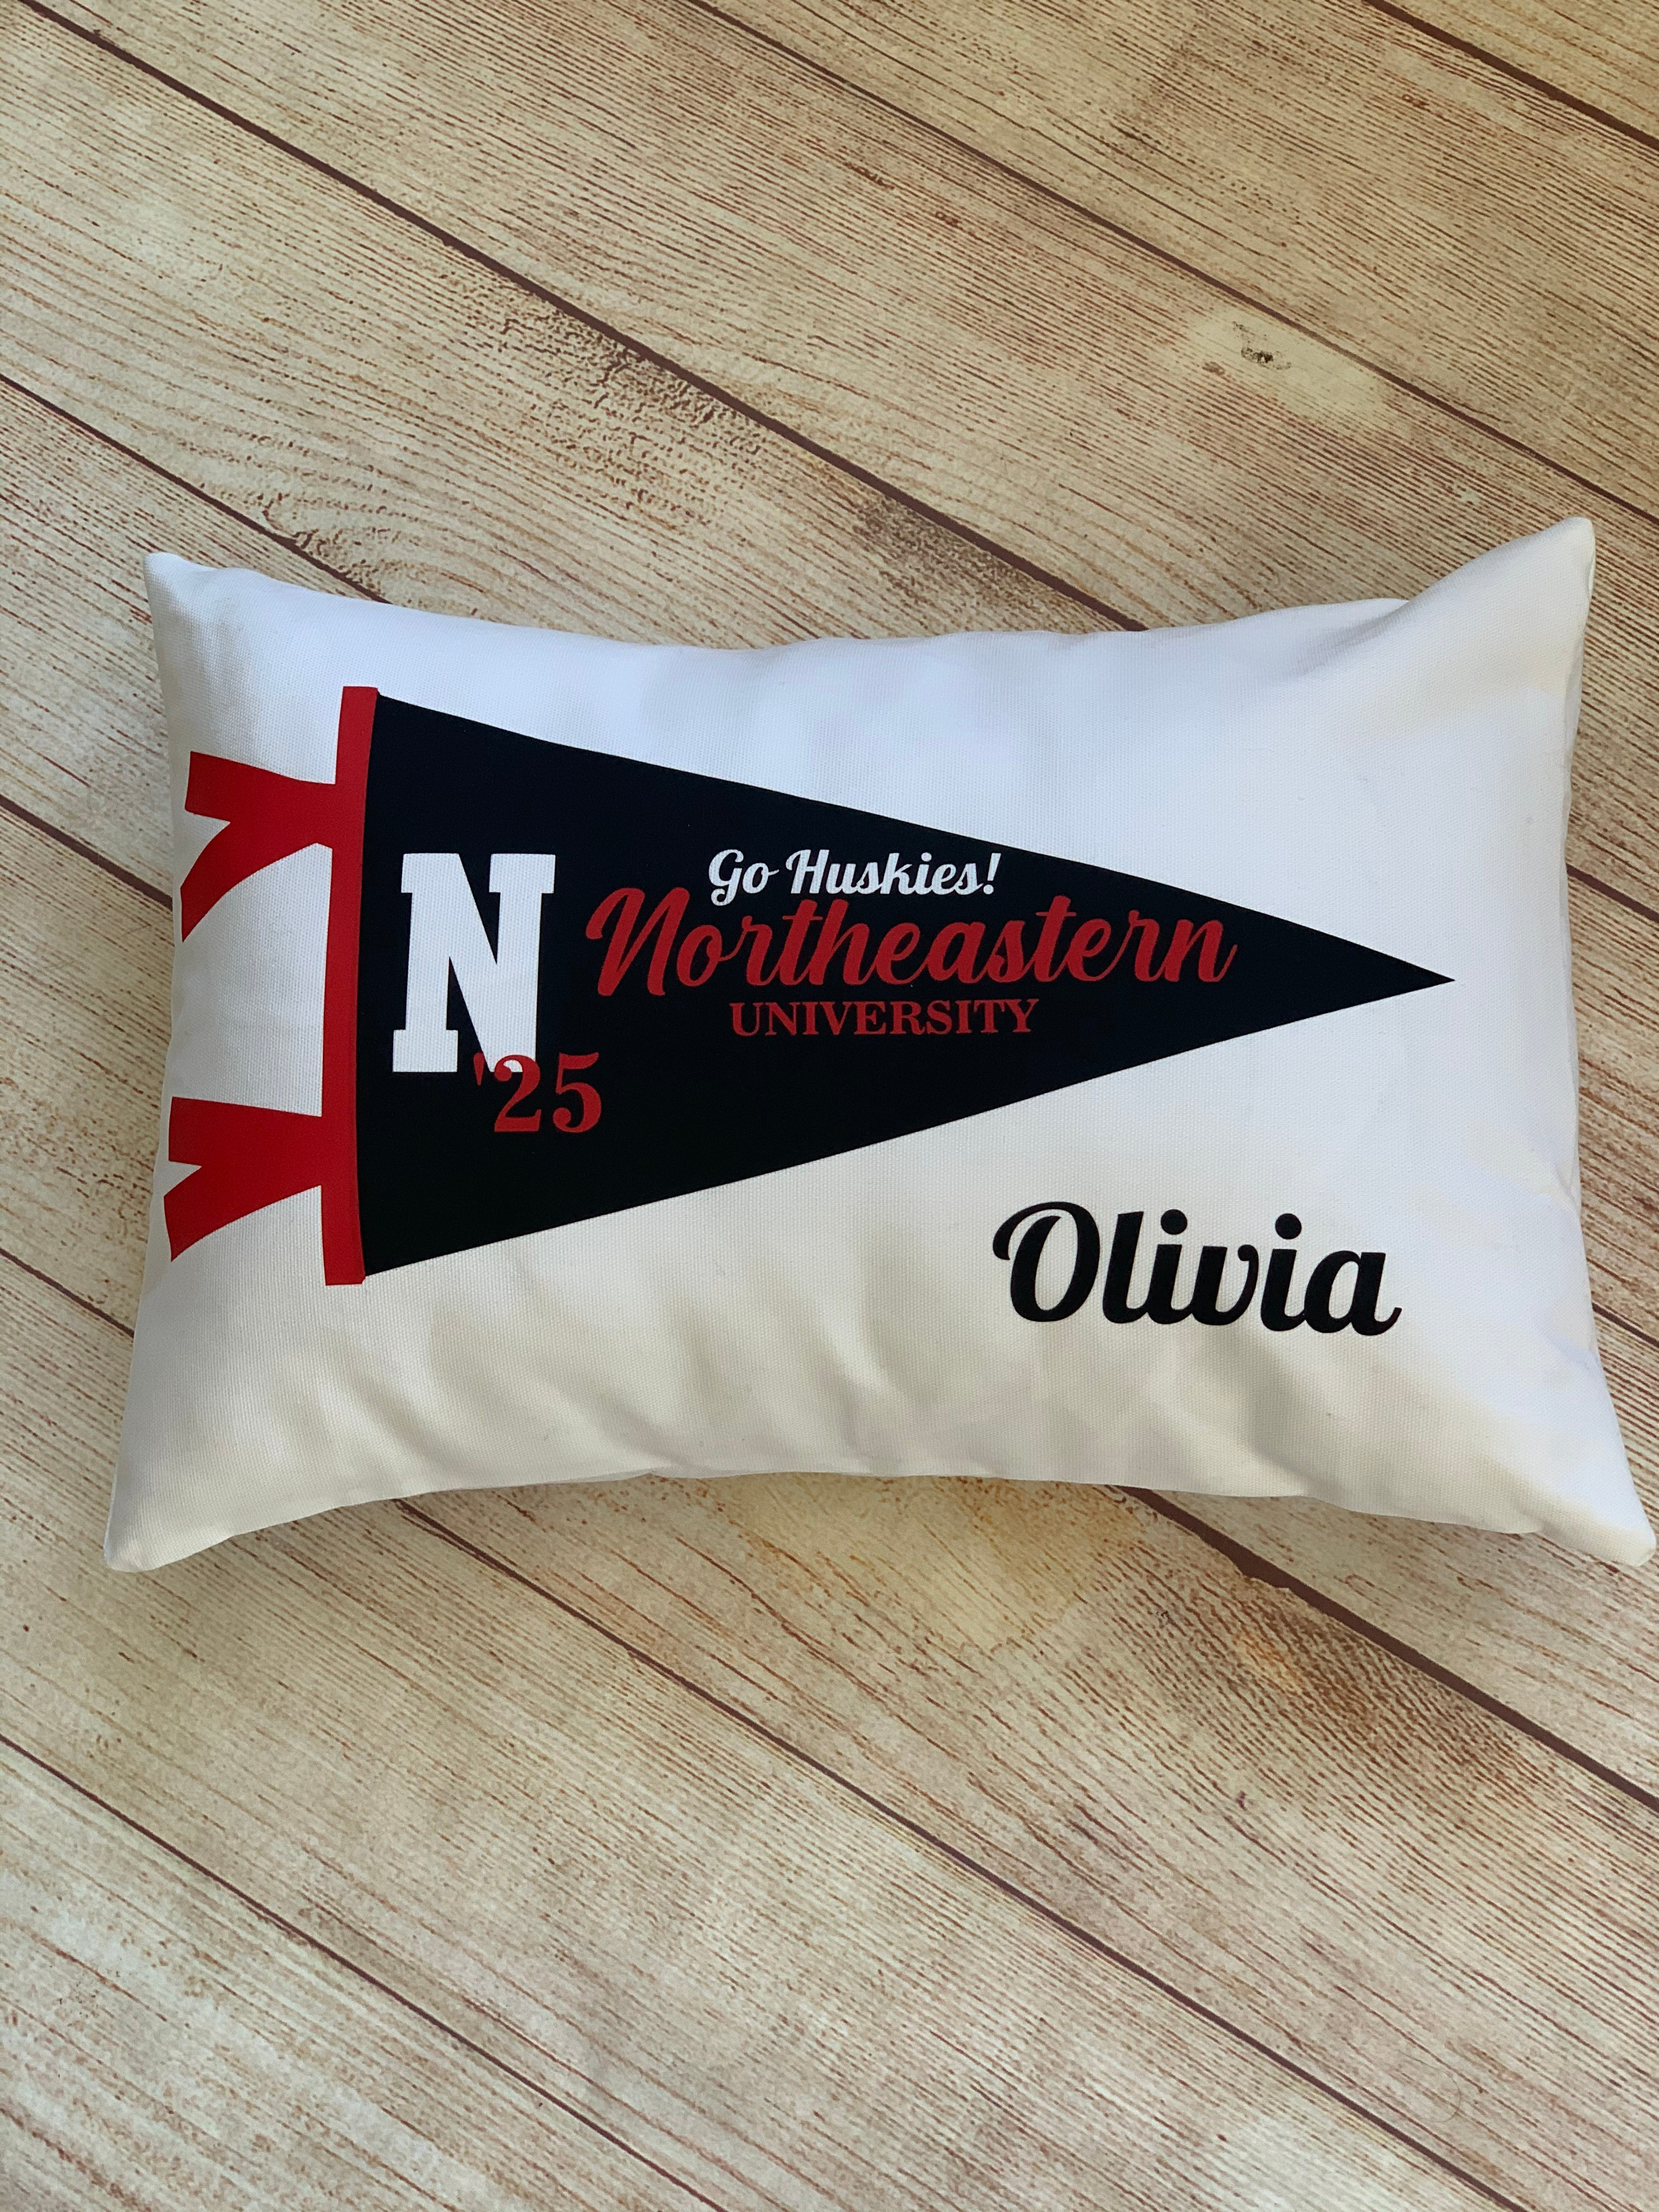 College Pennant Pillow  is imprinted on a crisp white rectangle shape pillow - by Wicked Stitches Gifts